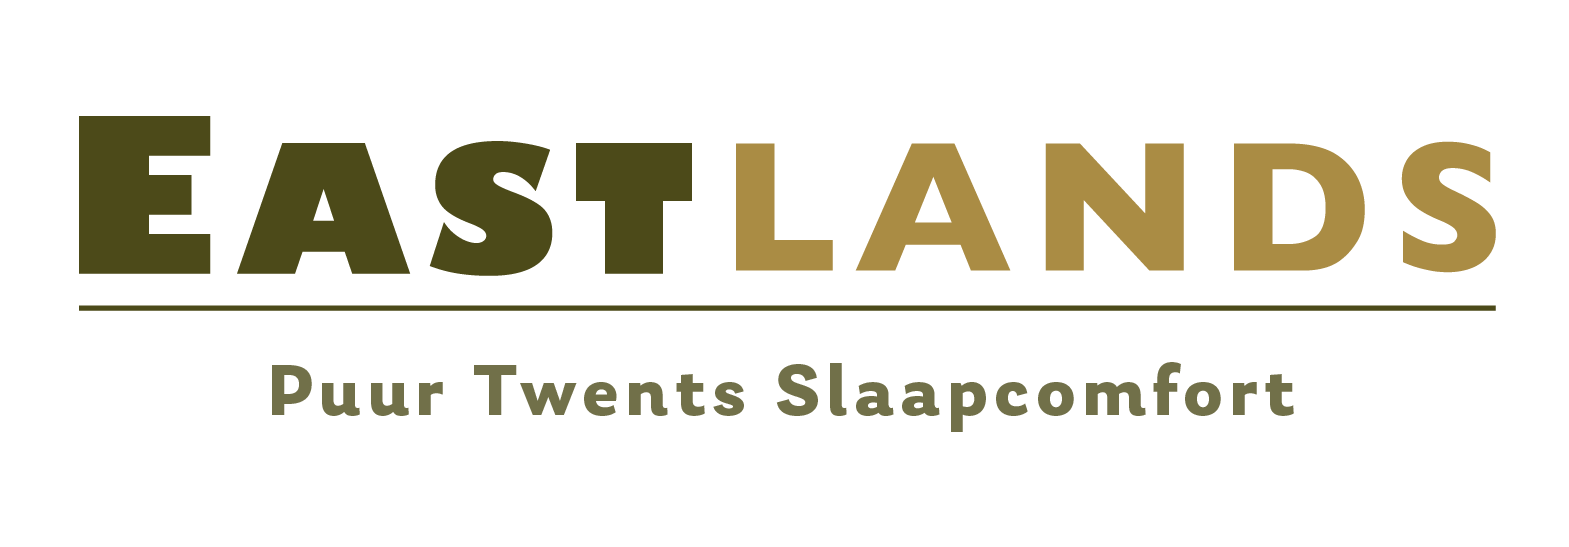 Logo eastlands Tekengebied 1 kopie